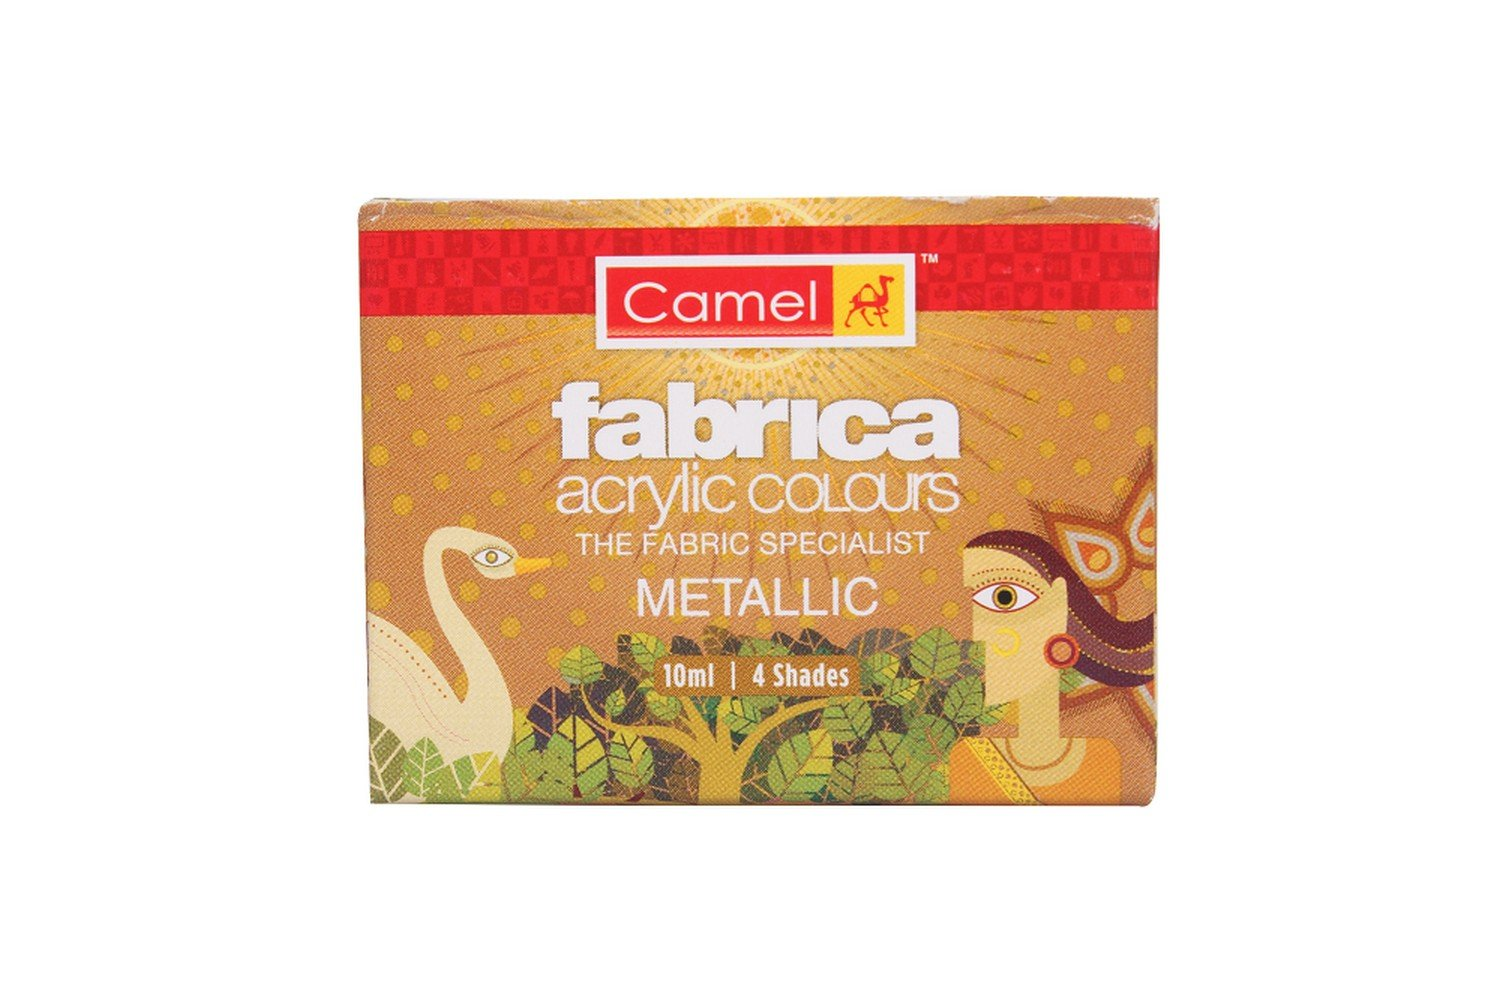 Camel Fabrica Acrylic Metallic Color - 10ml Each, 4 Shades